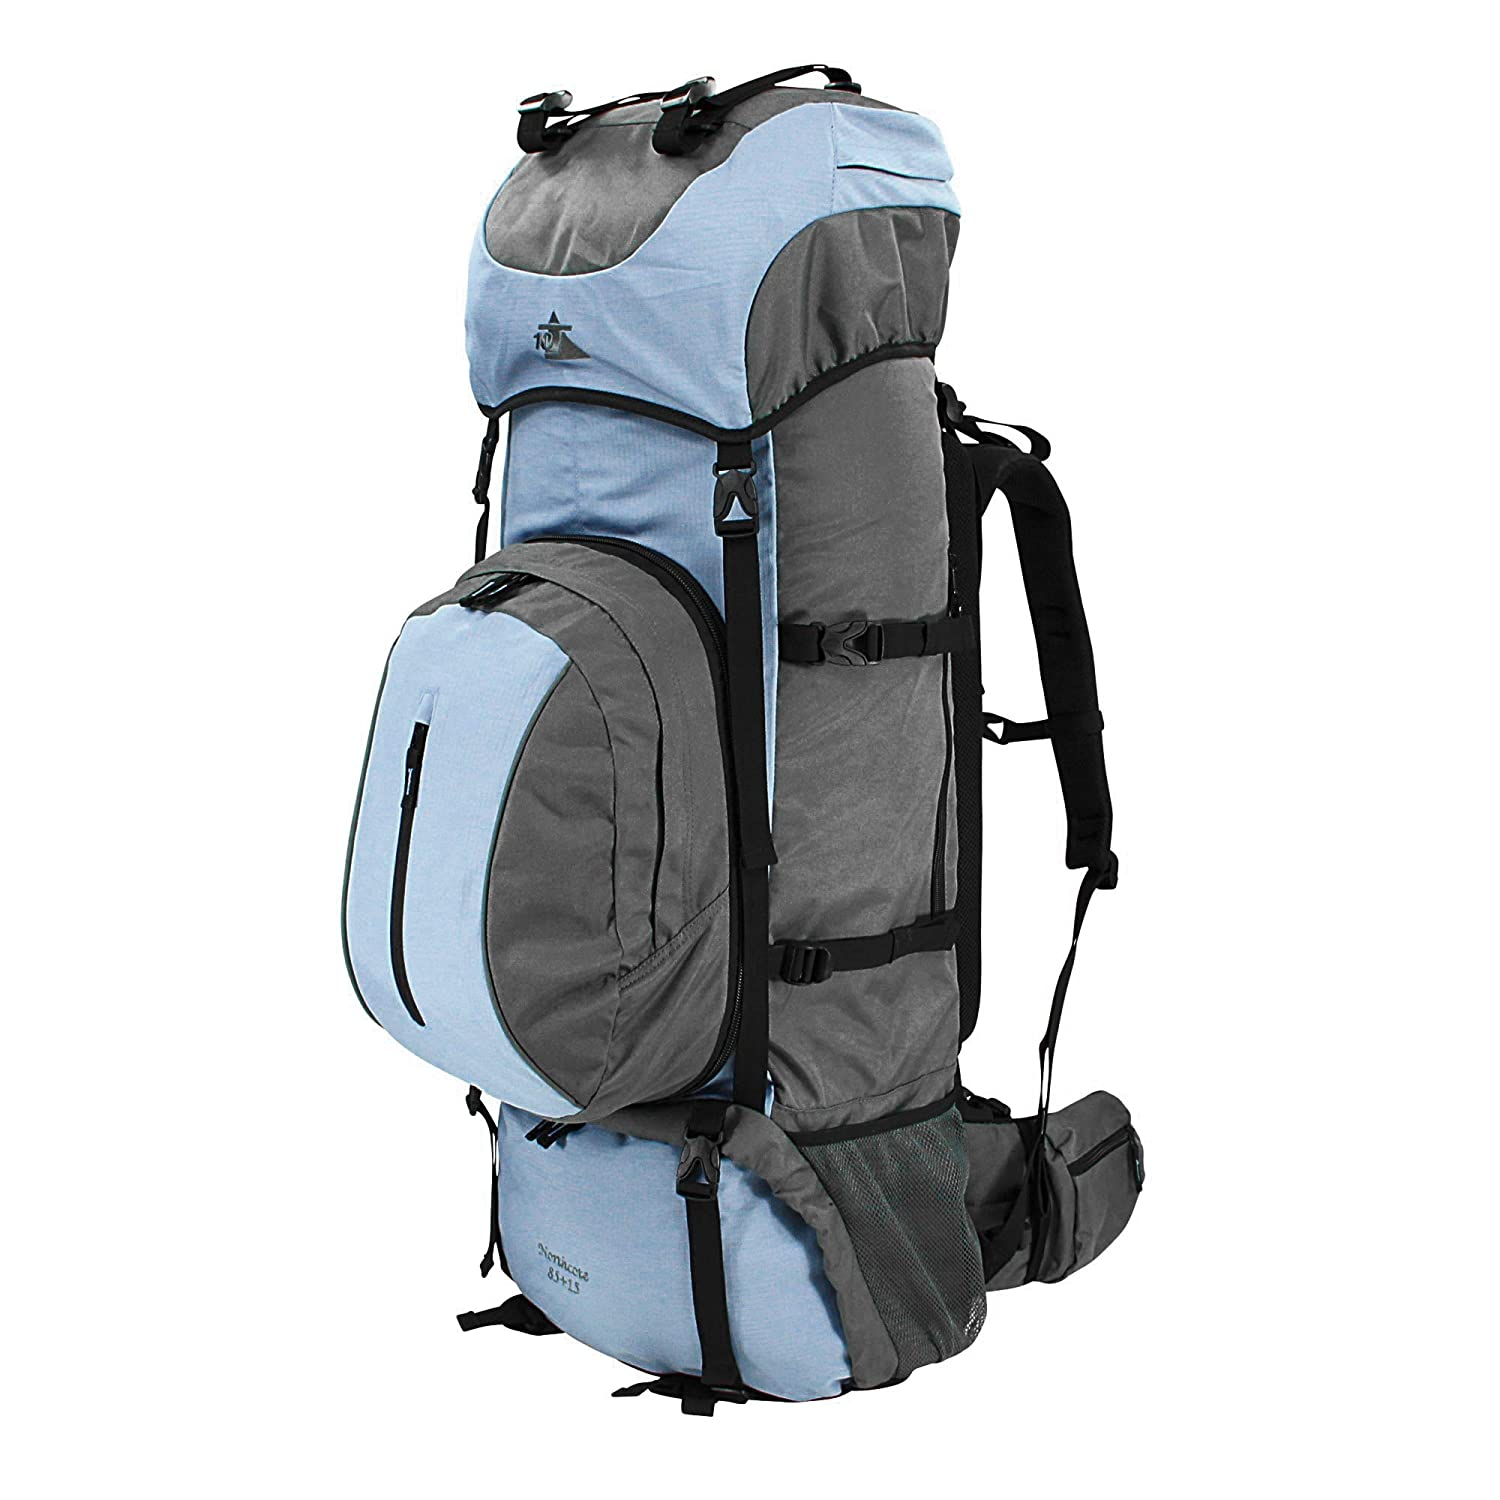 Blau // Grau 10T Outdoor Equipment Northcote 85+15 Saco marinero 95 cm Azul 100 liters